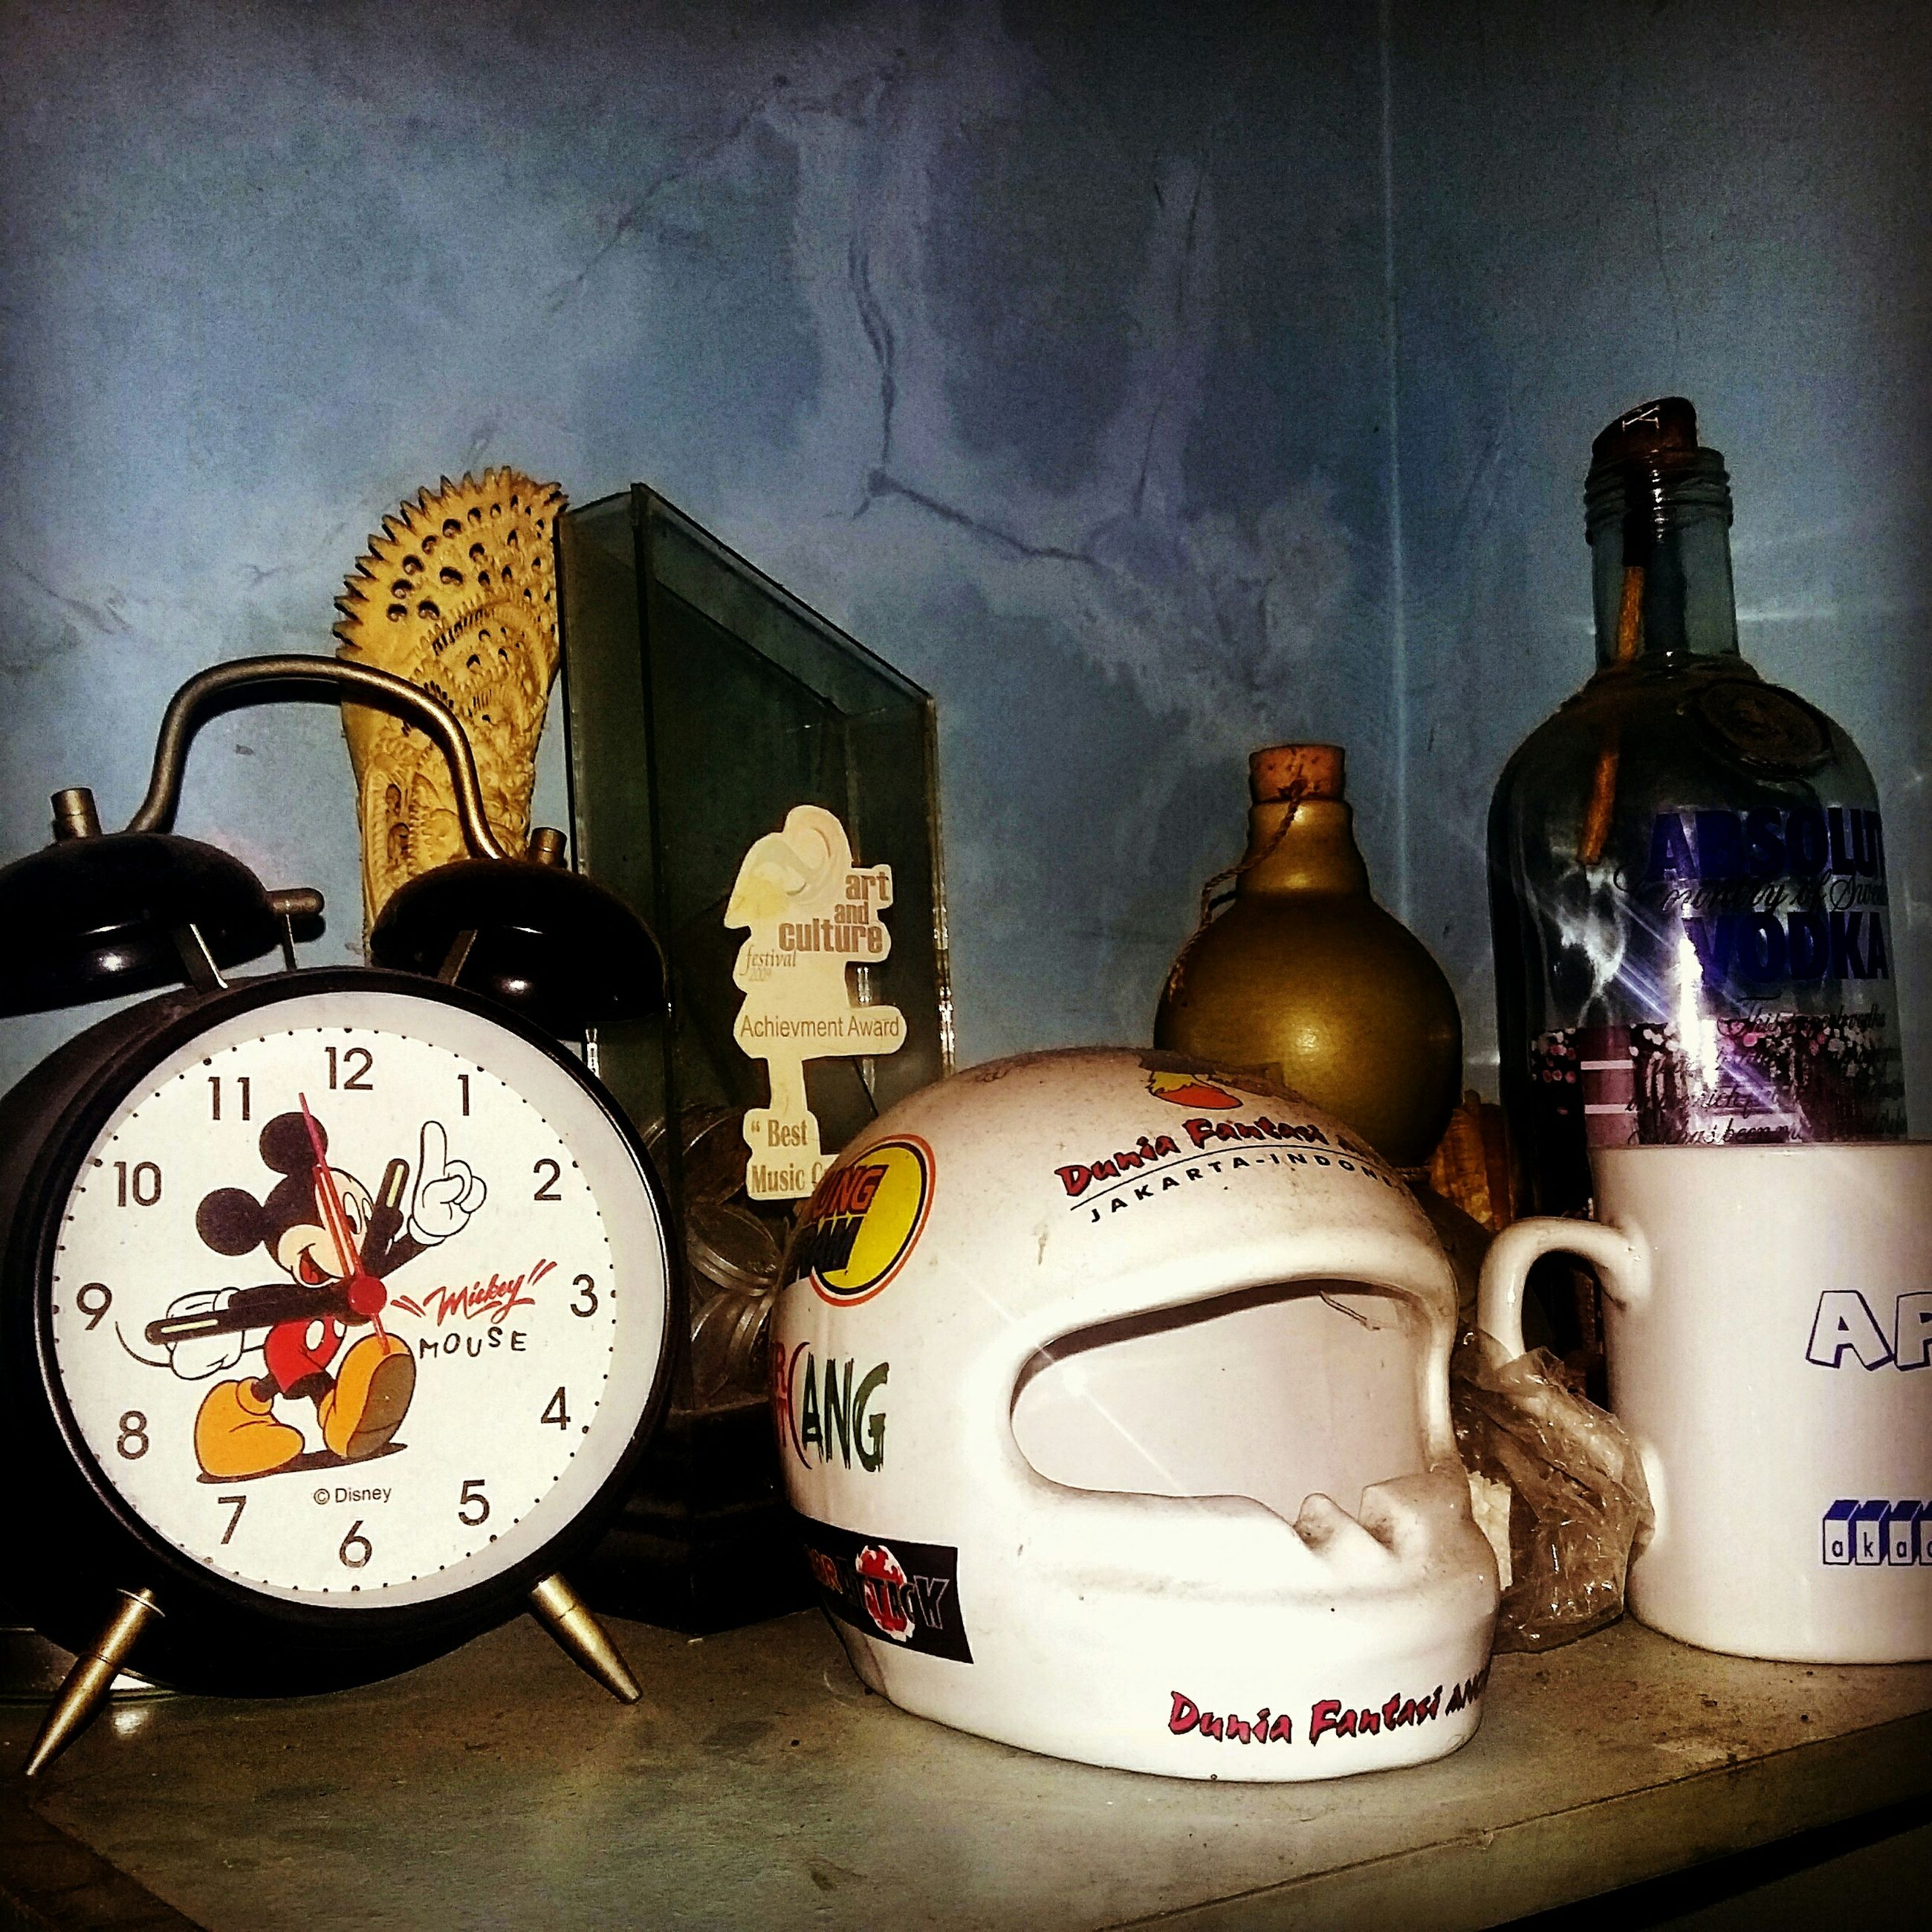 indoors, communication, clock, text, old-fashioned, retro styled, time, number, antique, still life, wall - building feature, western script, technology, table, no people, close-up, religion, accuracy, old